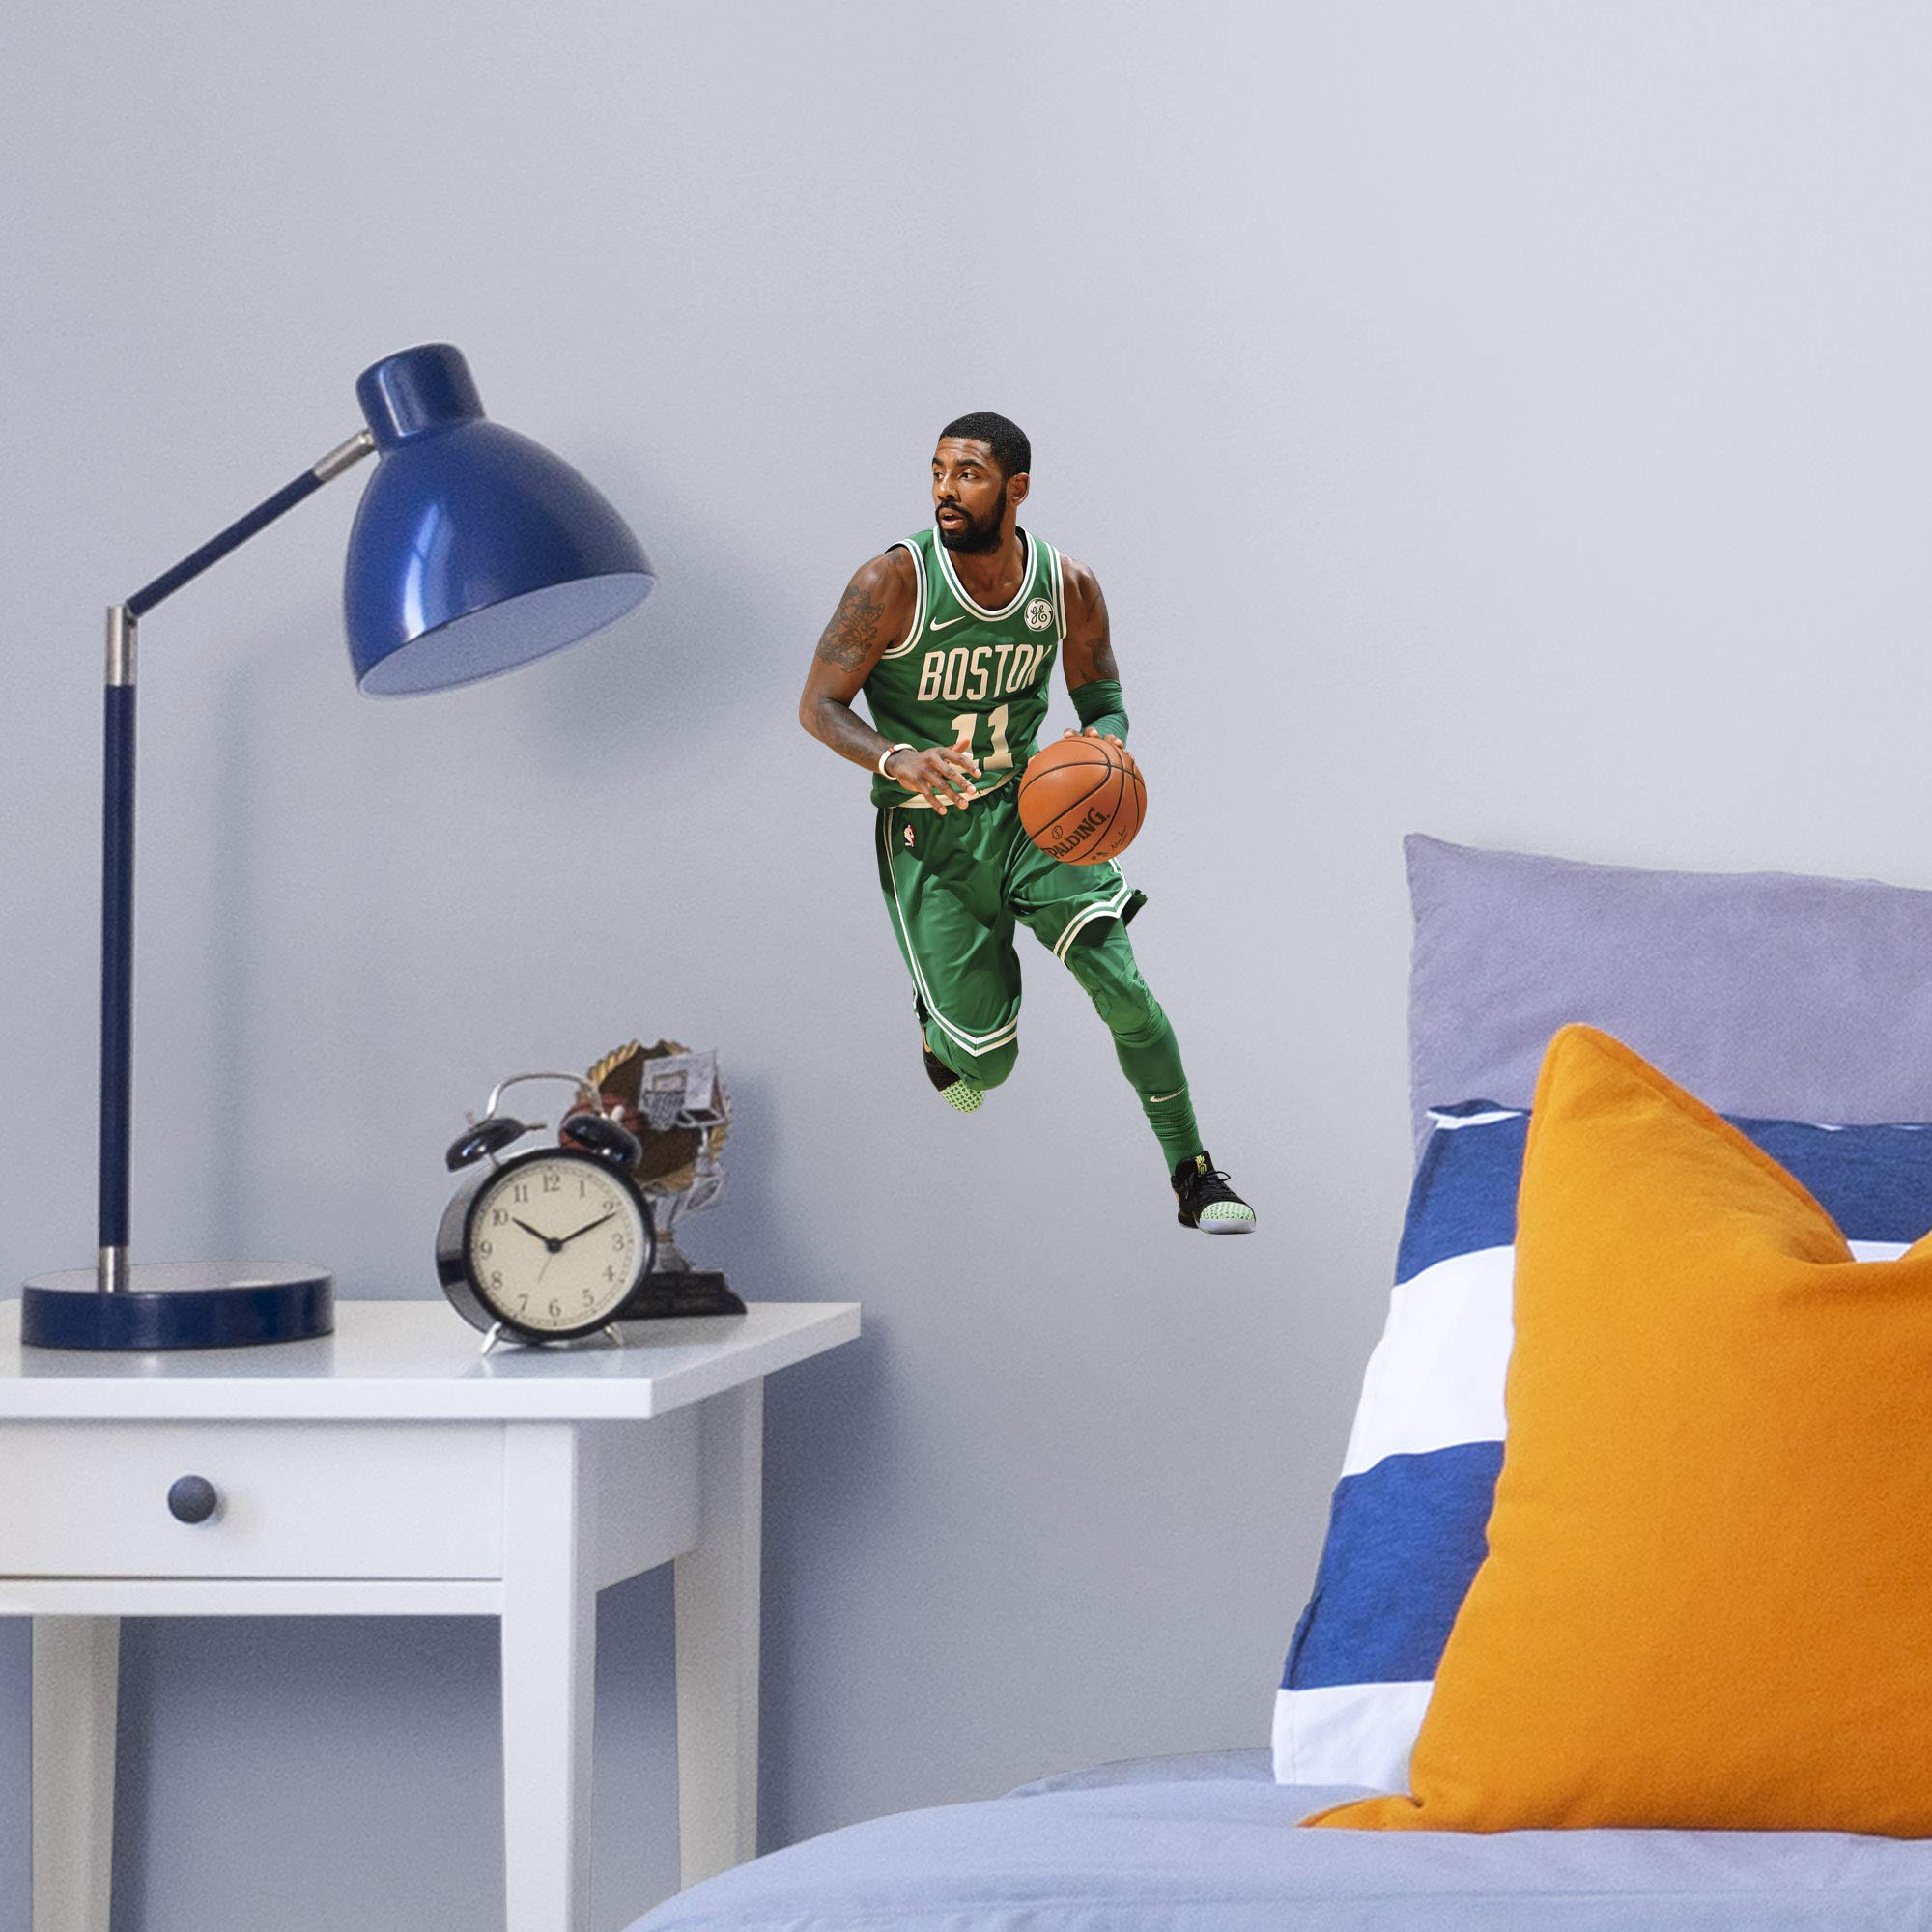 Fathead NBA Boston Celtics Kyrie Irving Kyrie Irving- Officially Licensed Removable Wall Decal, Multicolor, Large - 1900-00305-005 by FATHEAD